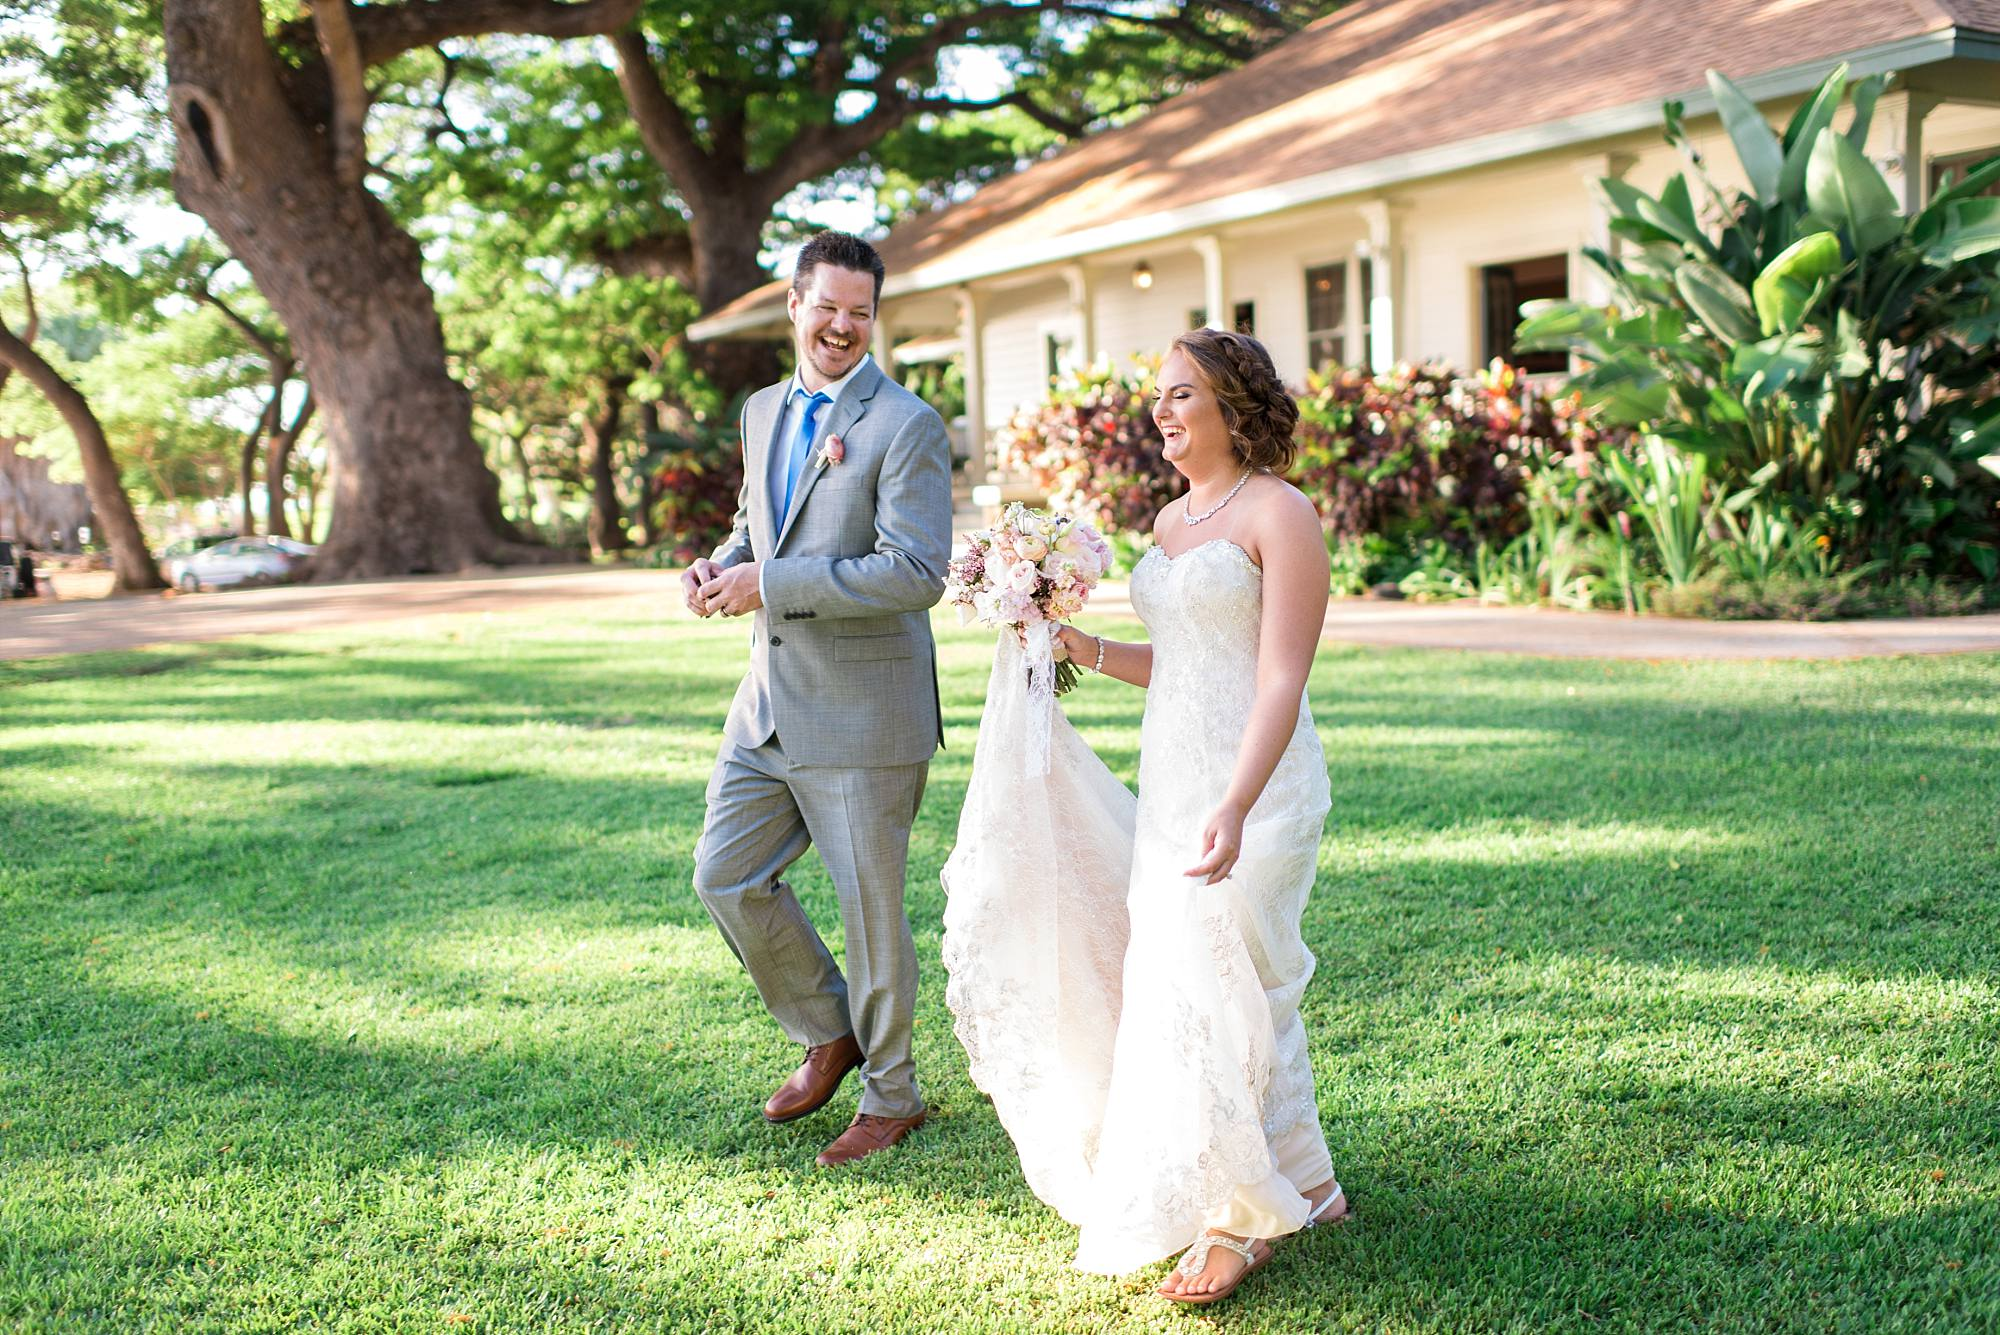 couple walking on grass with Olowalu Plantation house int he background